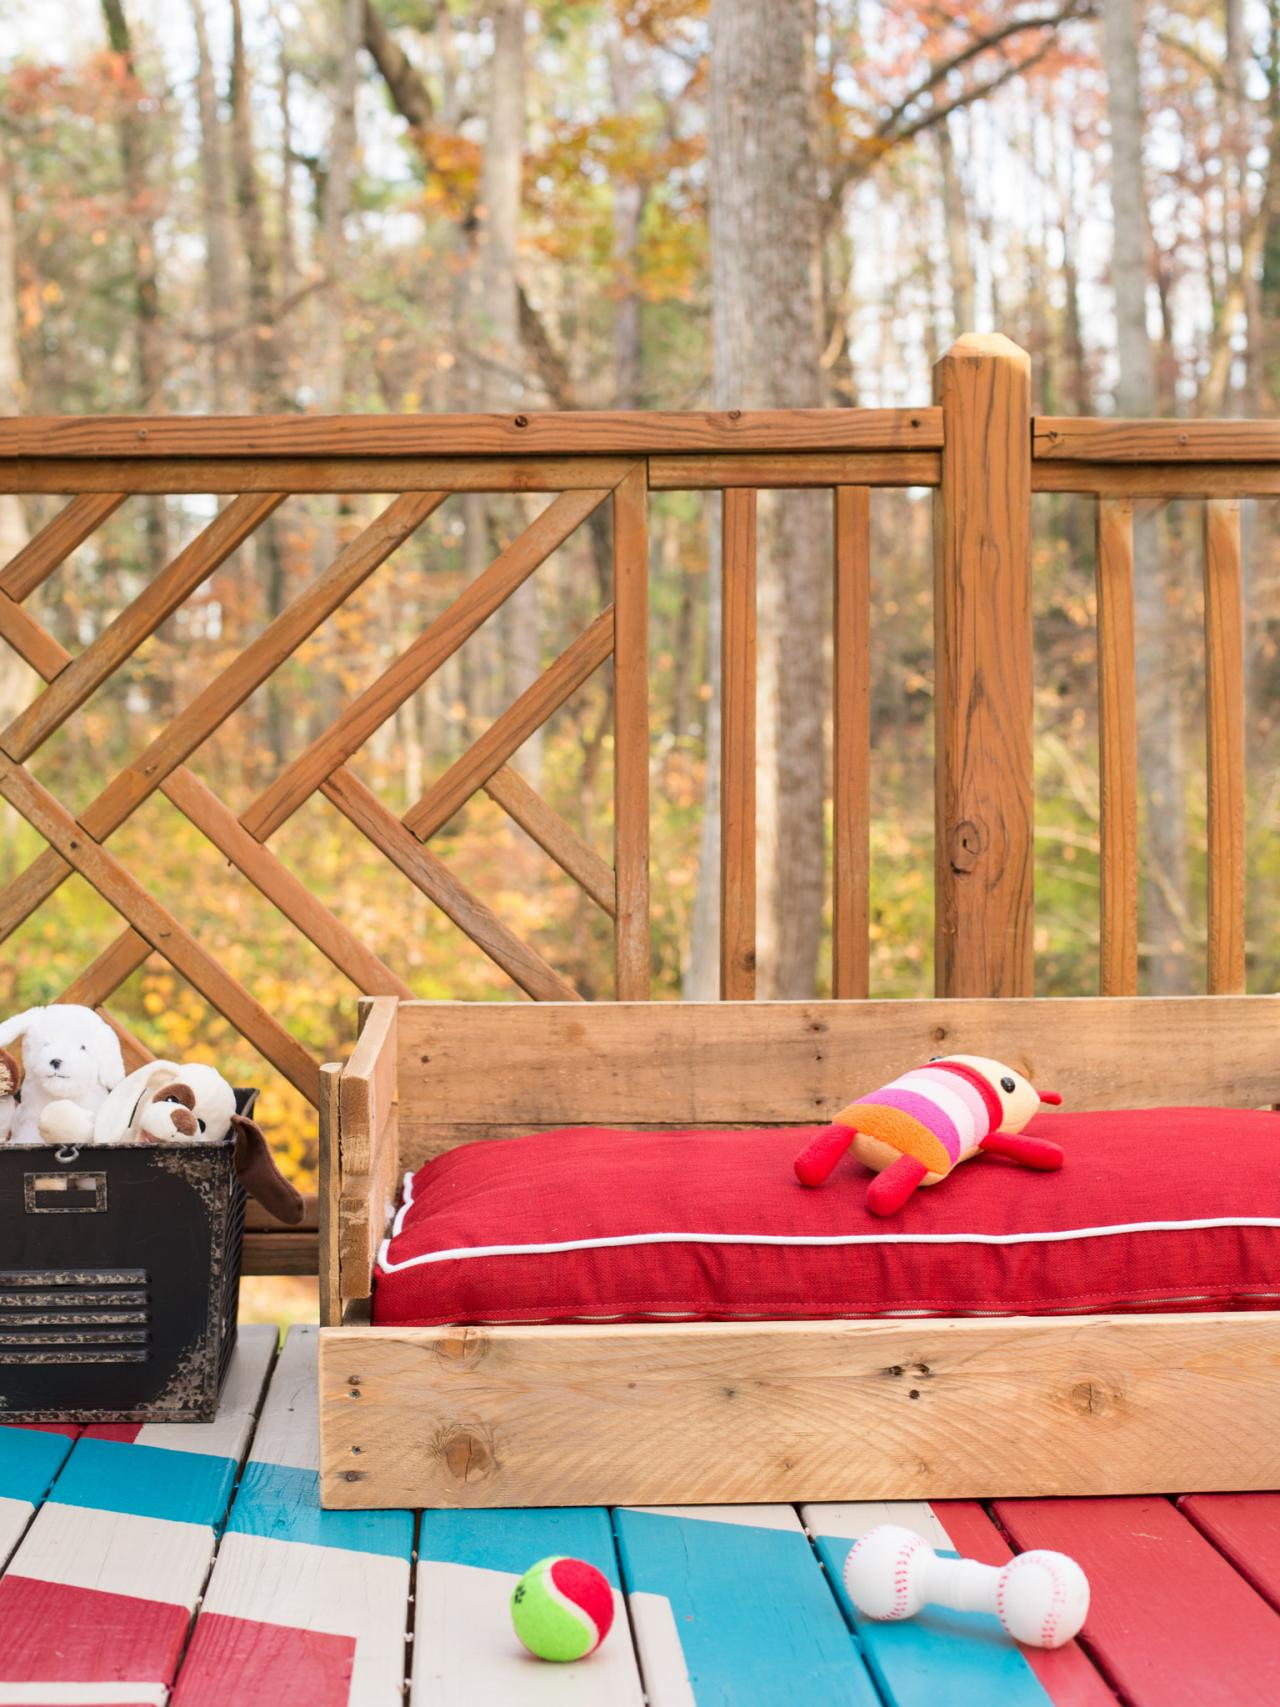 upcycle wood pallets into a cozy outdoor dog bed bedroomeasy eye upcycled pallet furniture ideas